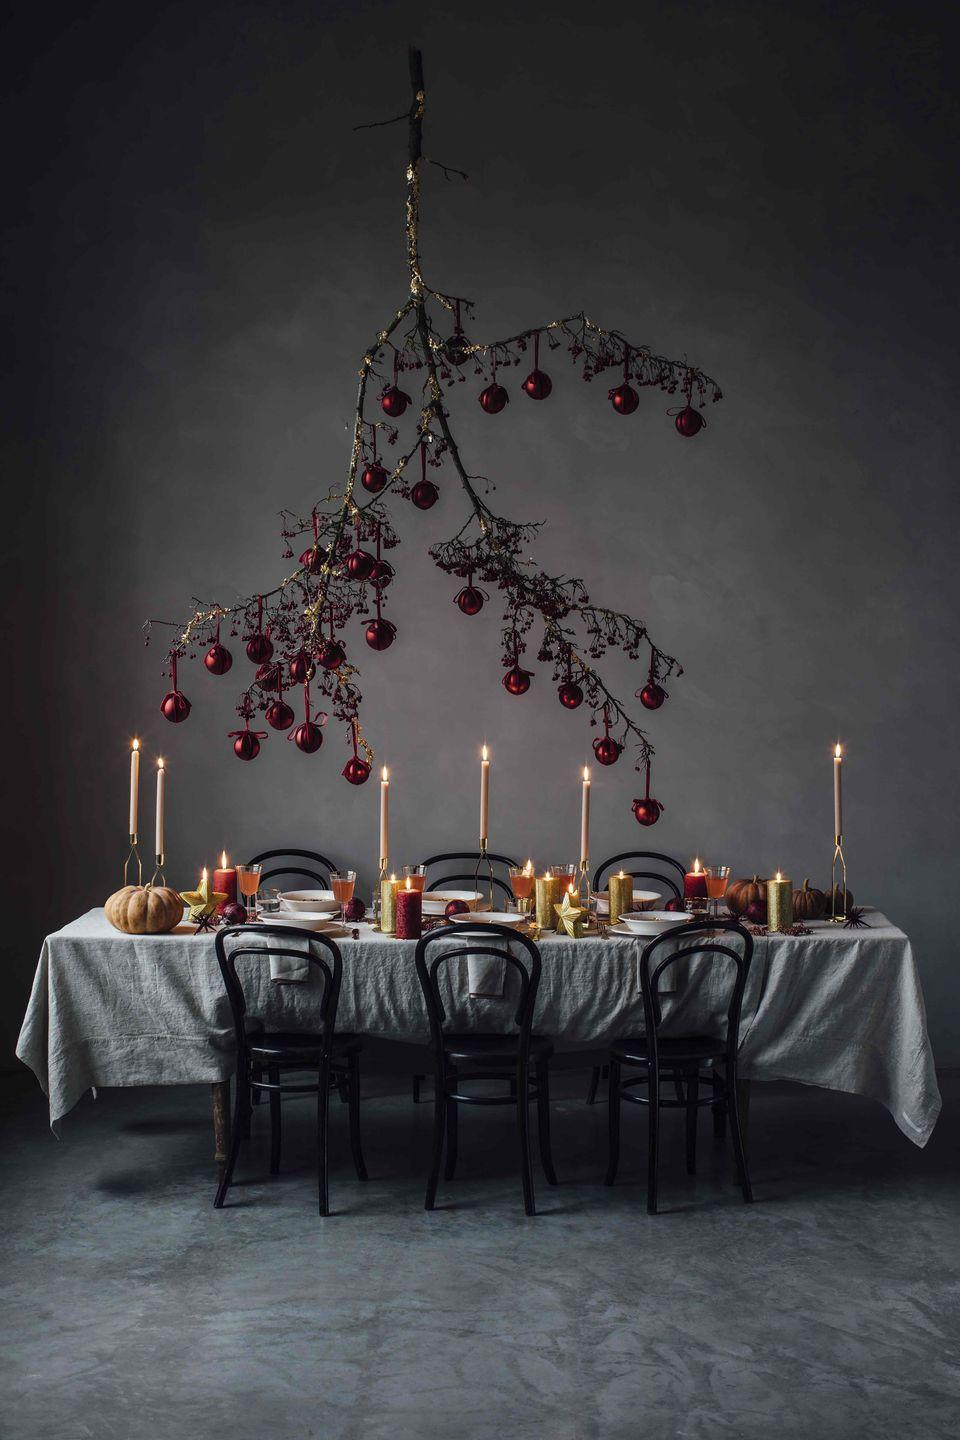 """<p>Steer away from the traditional tree and max up the wow factor with a bauble-dressed sprig suspended above the table, as inspired by Laura Muthesius and Nora Eisermann of blog Our Food Stories.</p><p>'Crystal <strong>baubles</strong>, £4.99 each; <strong>tableware</strong>, <strong>glassware</strong>; <strong>candles</strong>; and <strong>table linen</strong>, all from a selection, Zara Home (<u><a href=""""https://www.zarahome.com/gb/dining-c1089014.html"""" rel=""""nofollow noopener"""" target=""""_blank"""" data-ylk=""""slk:zarahome.com"""" class=""""link rapid-noclick-resp"""">zarahome.com</a></u>). For similar vintage 'Bentwood Bistro' <strong>chairs</strong>, try Vinterior (<u><a href=""""https://www.vinterior.co/"""" rel=""""nofollow noopener"""" target=""""_blank"""" data-ylk=""""slk:vinterior.co"""" class=""""link rapid-noclick-resp"""">vinterior.co</a></u>). <strong>Bough </strong>styled by Mary Lennox Flower Studio. (<u><a href=""""http://marylennox.de/"""" rel=""""nofollow noopener"""" target=""""_blank"""" data-ylk=""""slk:marylennox.de"""" class=""""link rapid-noclick-resp"""">marylennox.de</a></u>)</p>"""